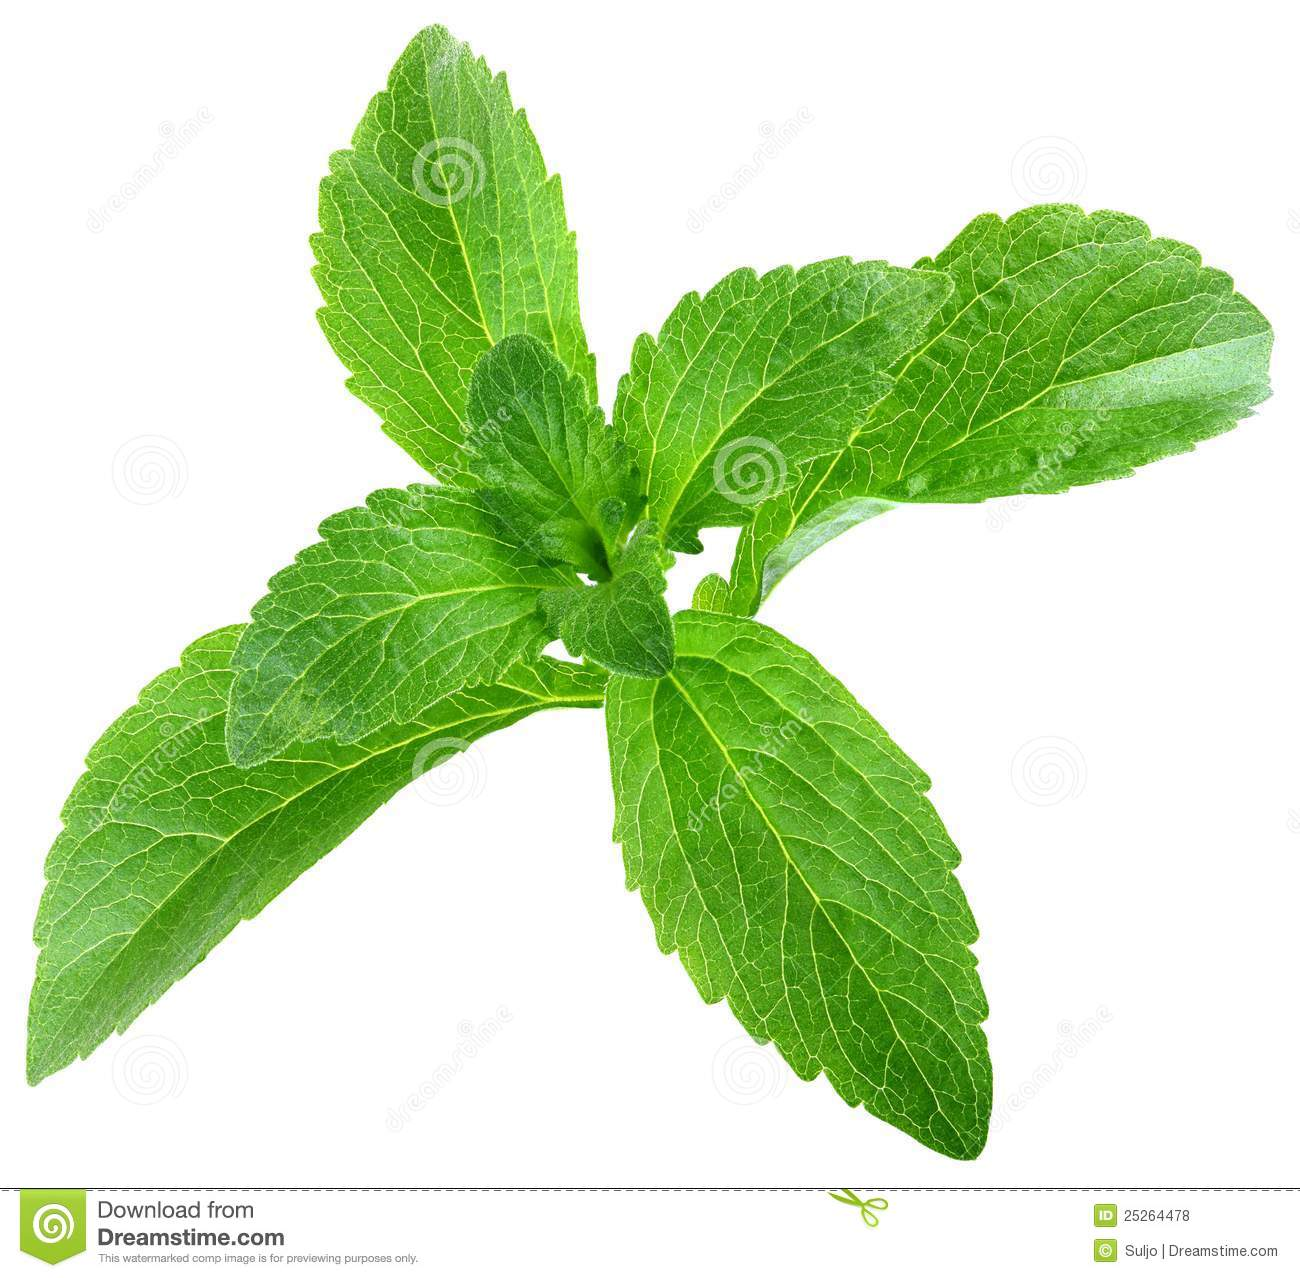 stevia rebaudiana leafs cut out royalty free stock photos. Black Bedroom Furniture Sets. Home Design Ideas